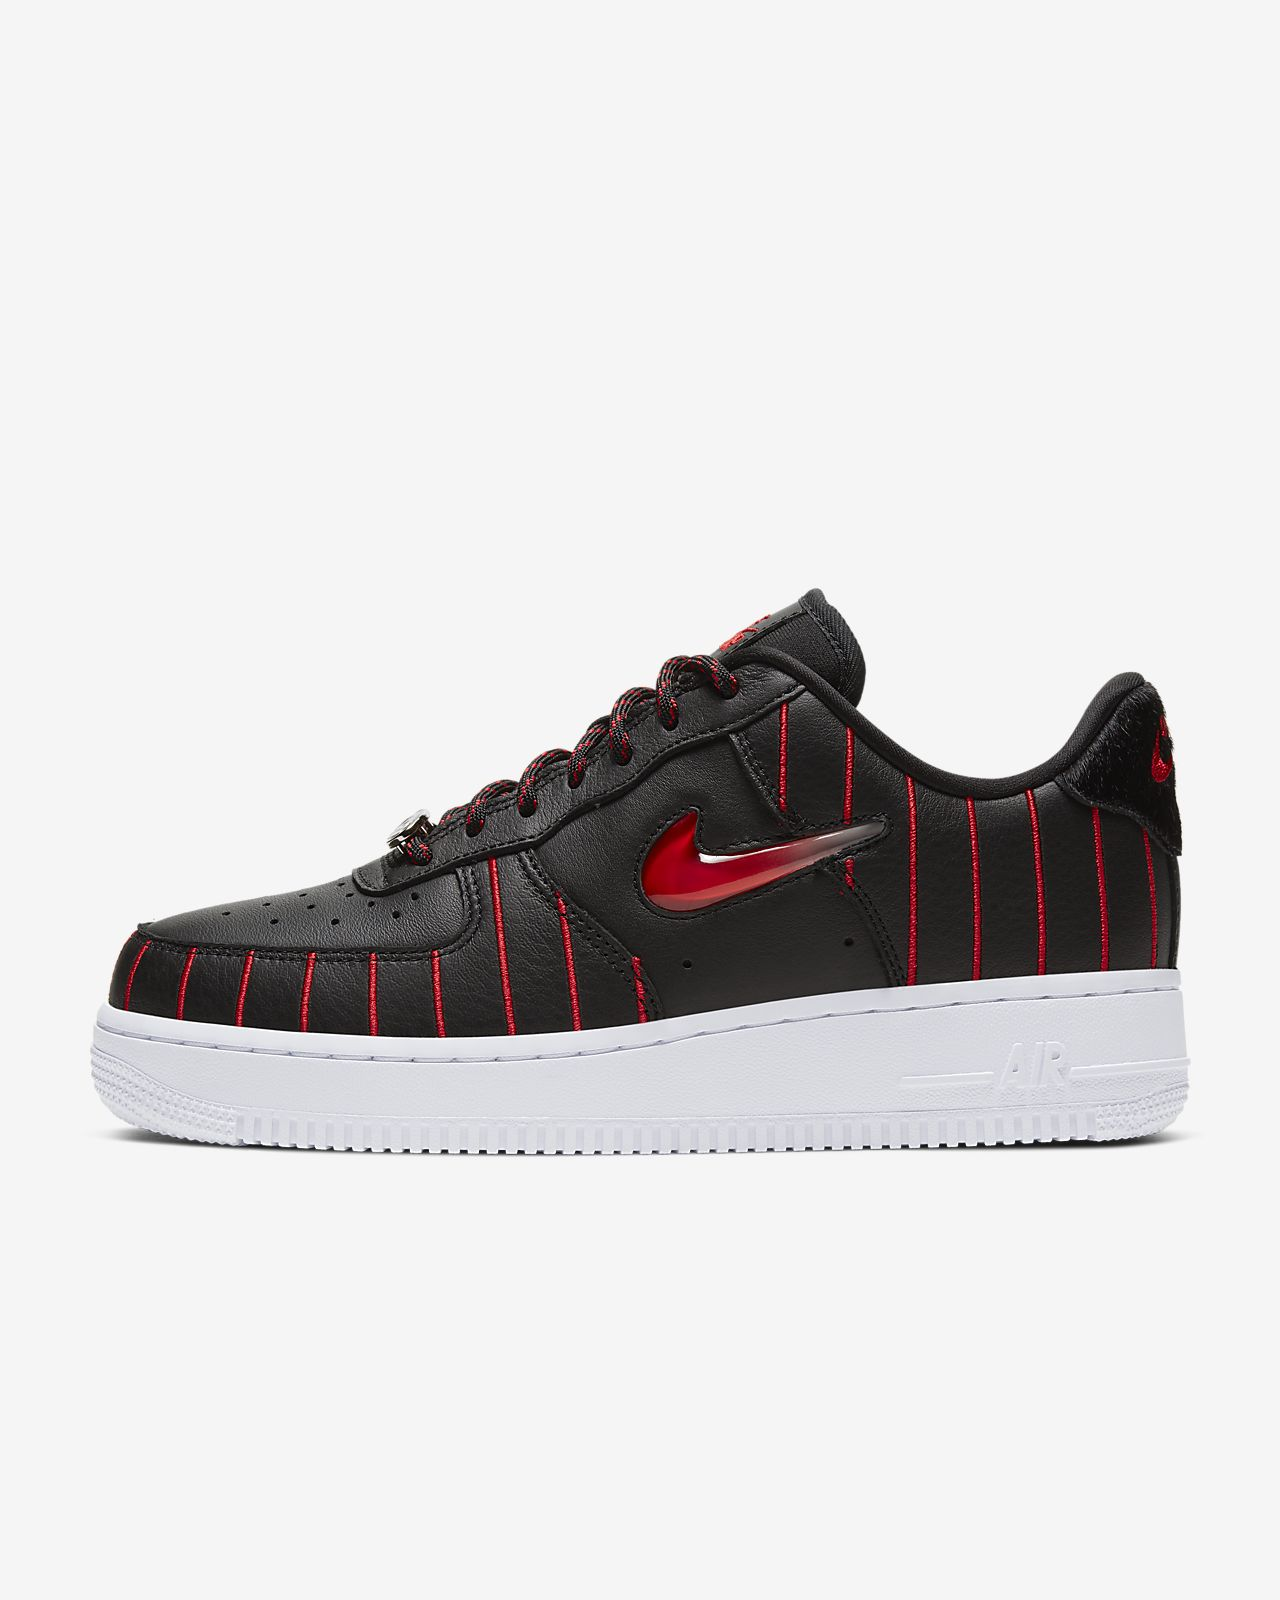 Type Casual Nike Air Force 1 Mid '07 LV8 Jewel